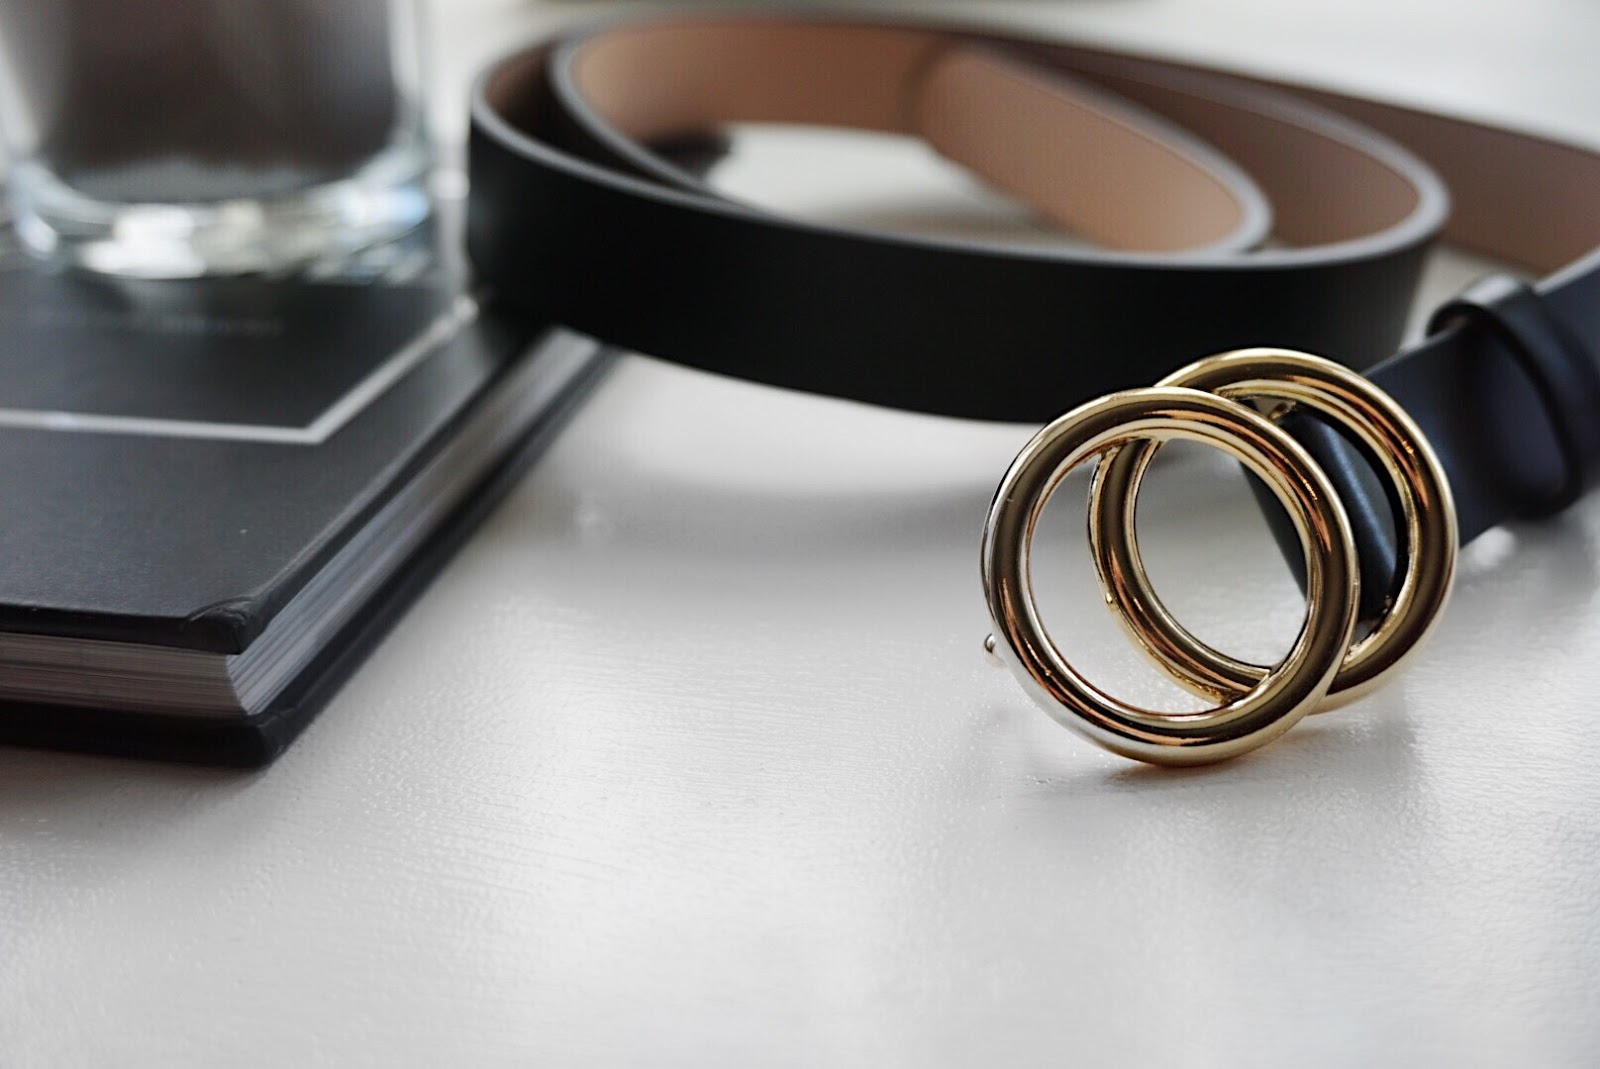 bf760036ff1 The second item I am loving is this belt from H M. Another dupe for the  famously well known Gucci belt. I am not surprised I am seeing a dupe of  this belt ...